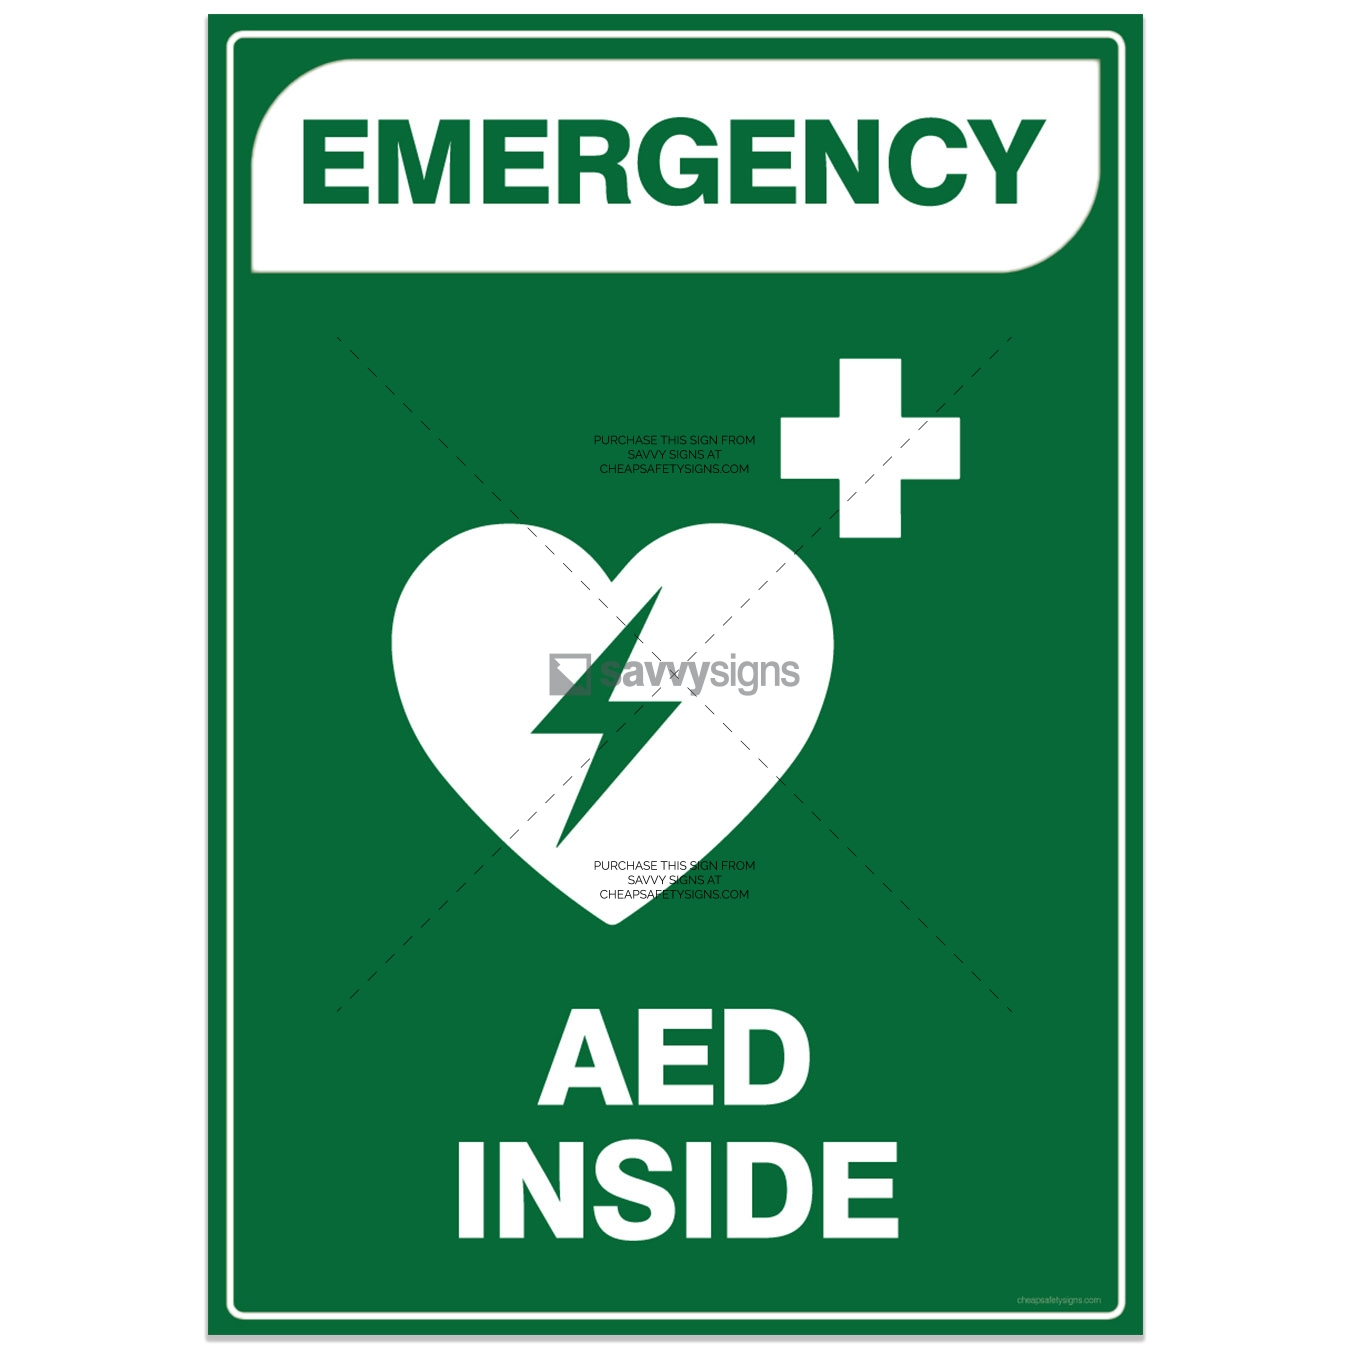 SSEME3041-EMERGENCY-Workplace-Safety-Signs_Savvy-Signs_v3